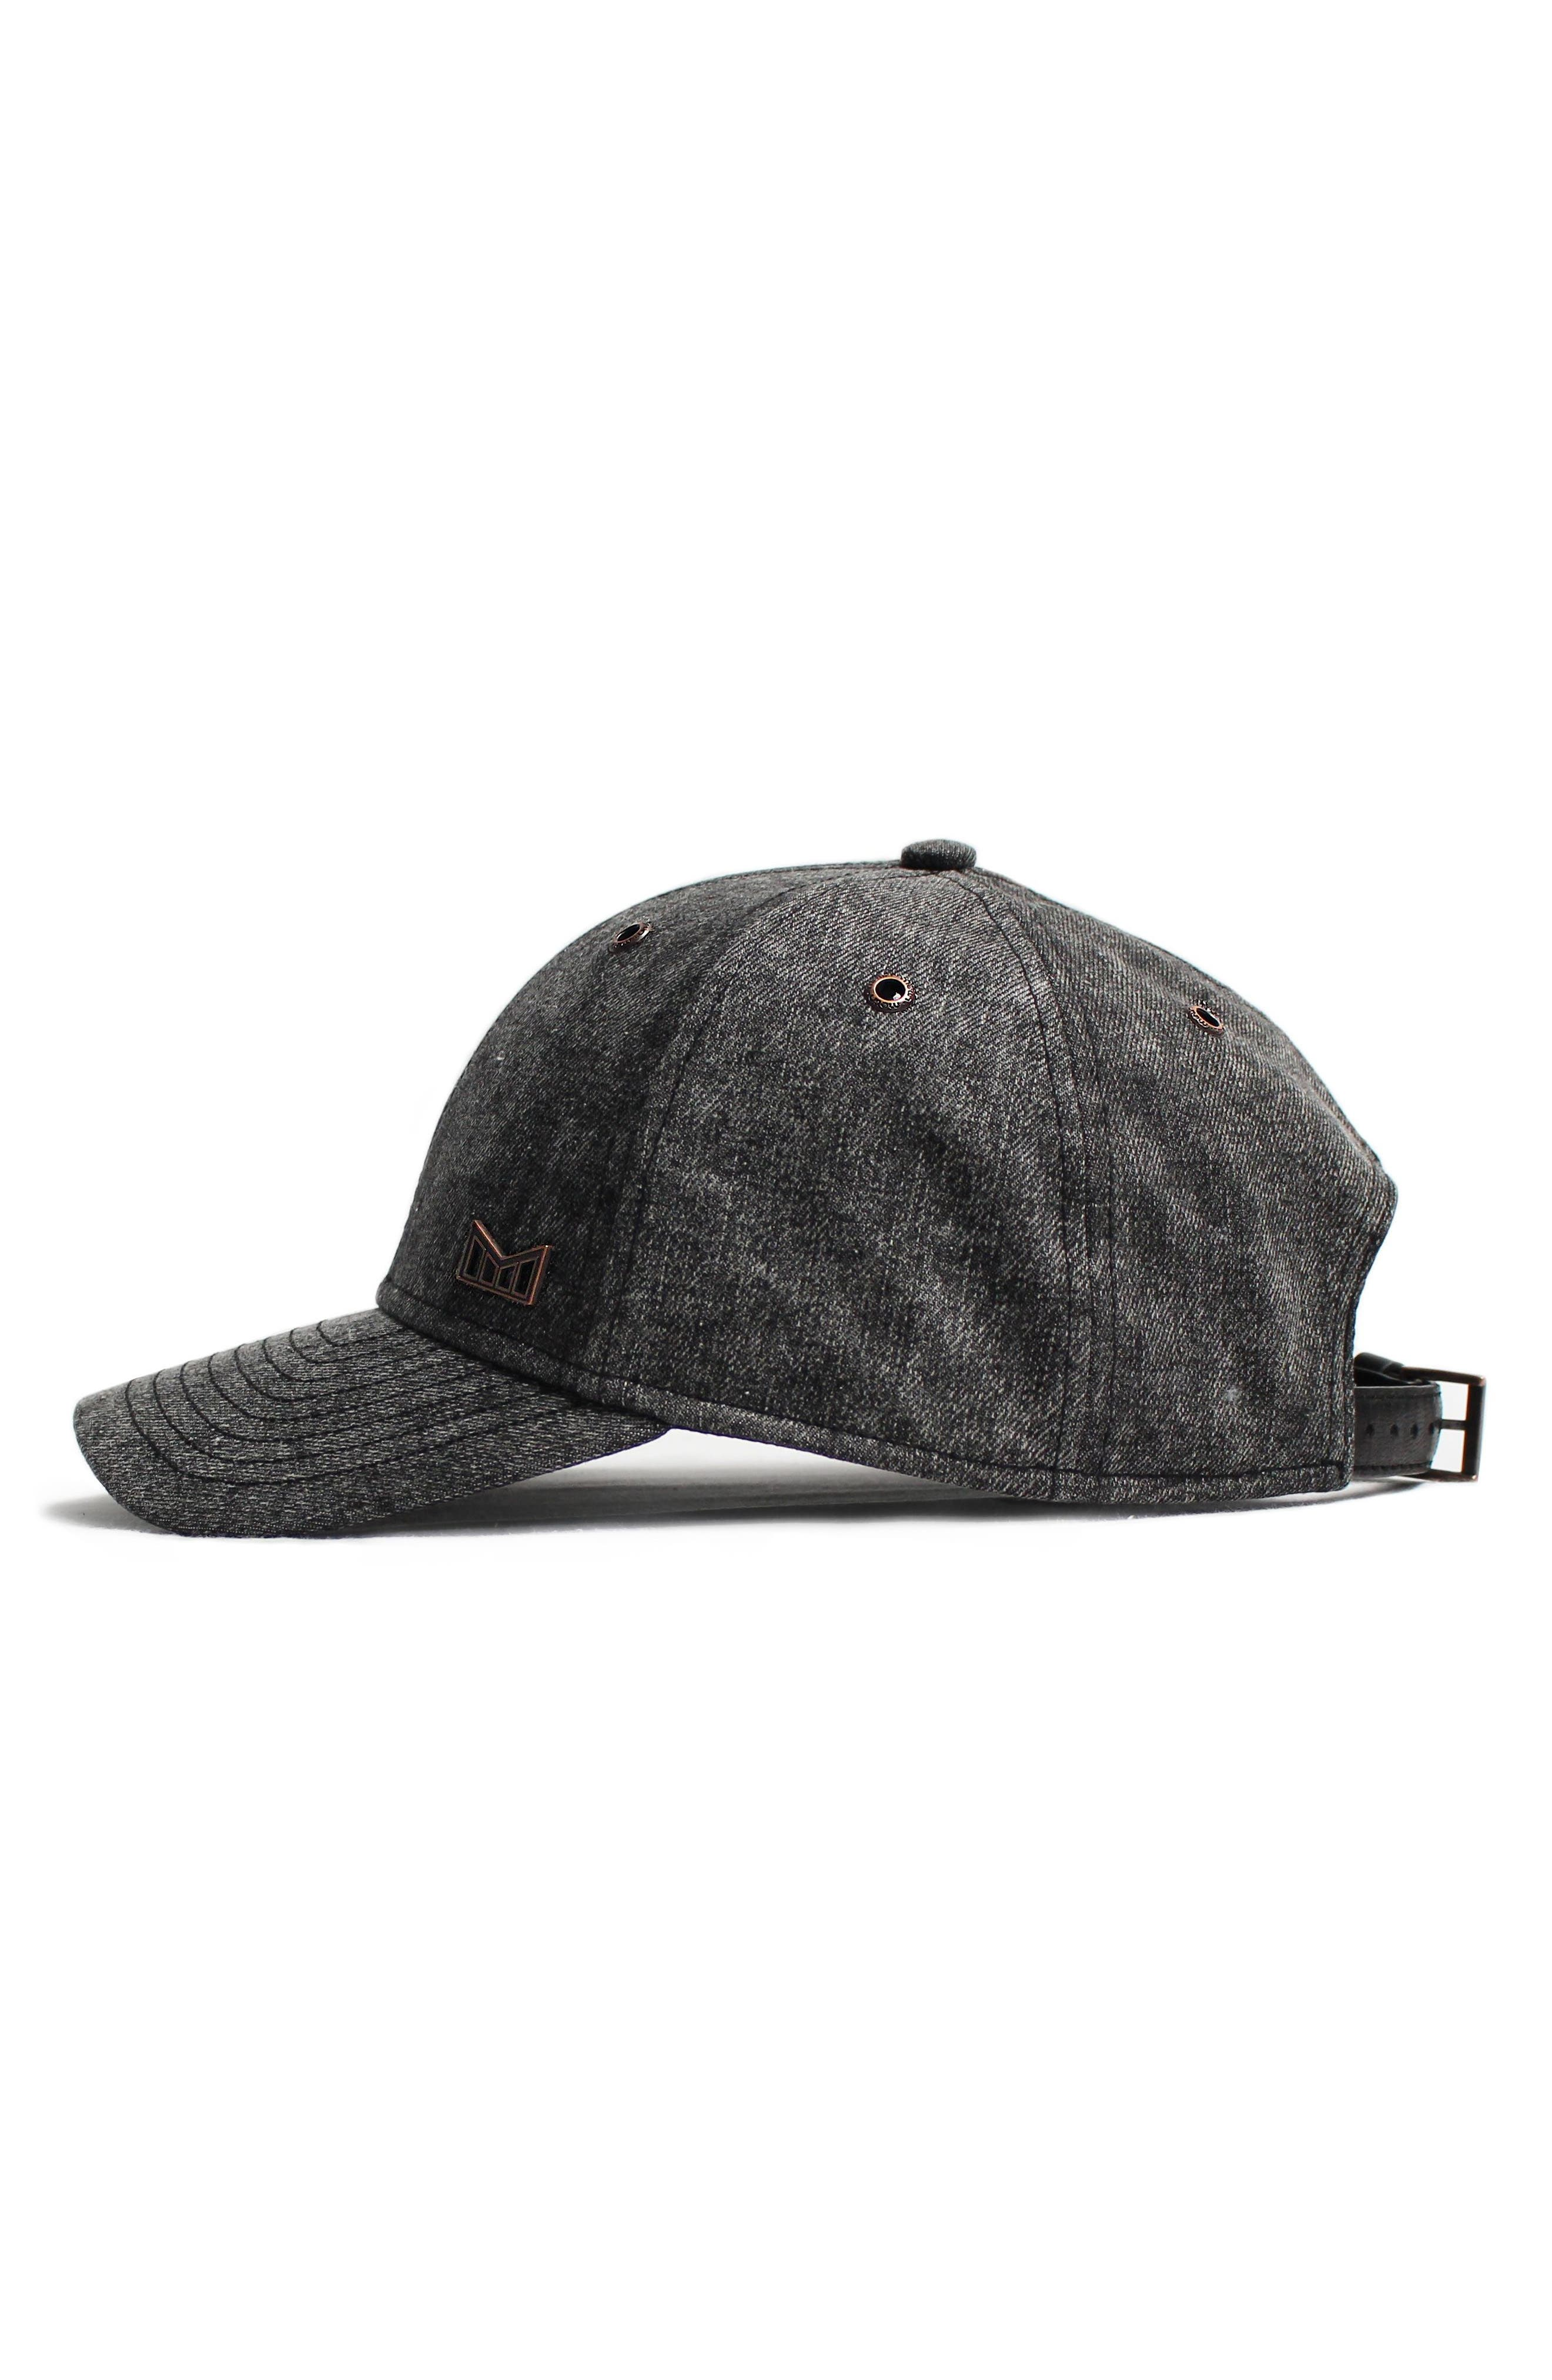 'The Haze' Vintage Fit Baseball Cap,                             Alternate thumbnail 4, color,                             Black